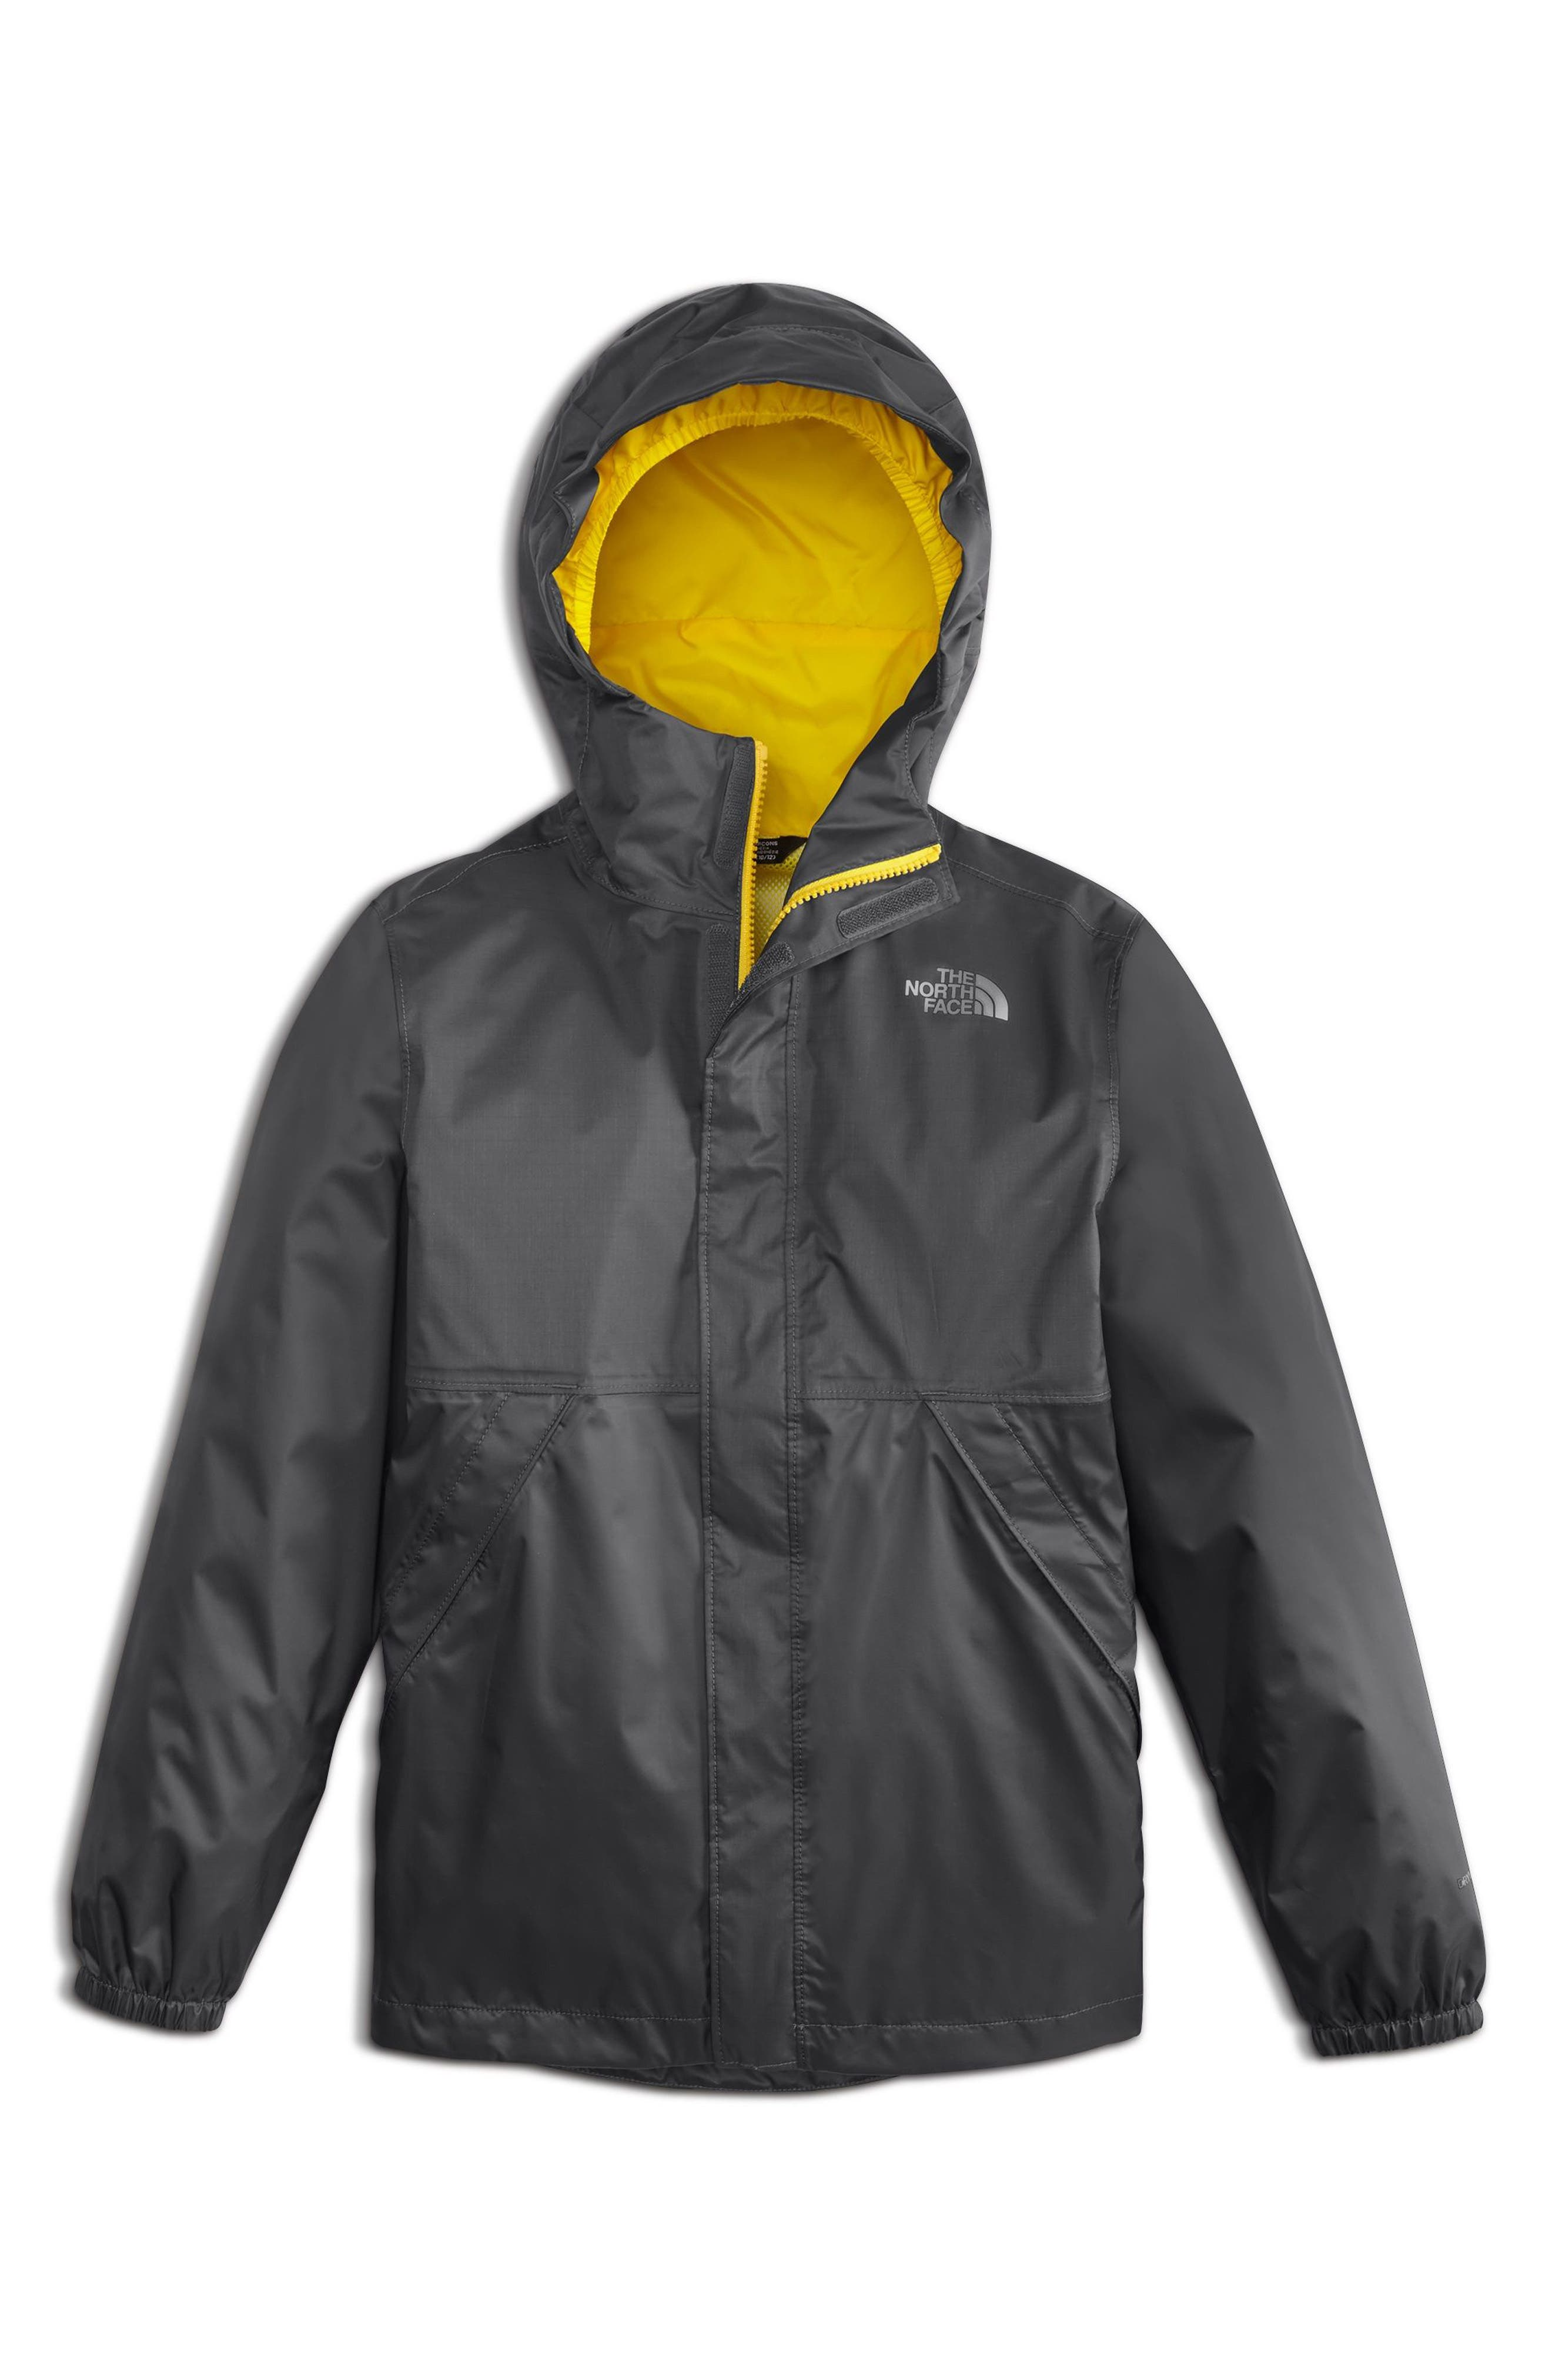 Alternate Image 1 Selected - The North Face Stormy Rain TriClimate® Waterproof 3-in-1 Jacket (Big Boys)